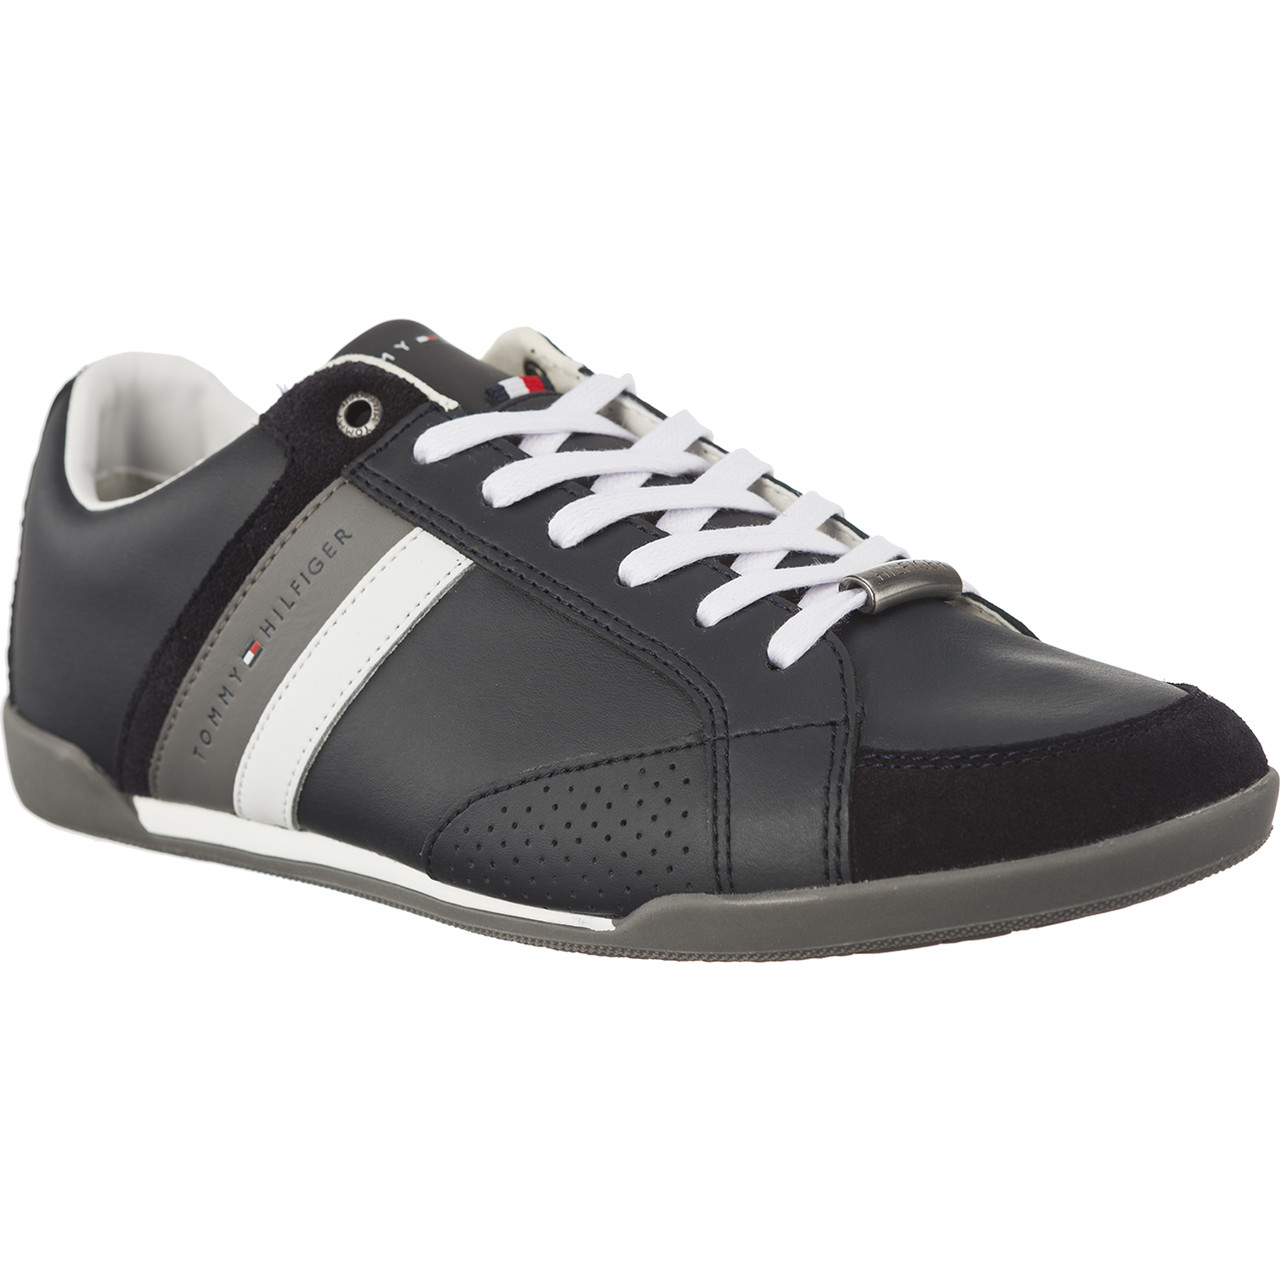 231b845653a11 Buty Tommy Hilfiger  br   small CORPORATE MATERIAL MIX CUPSOLE 403 ...